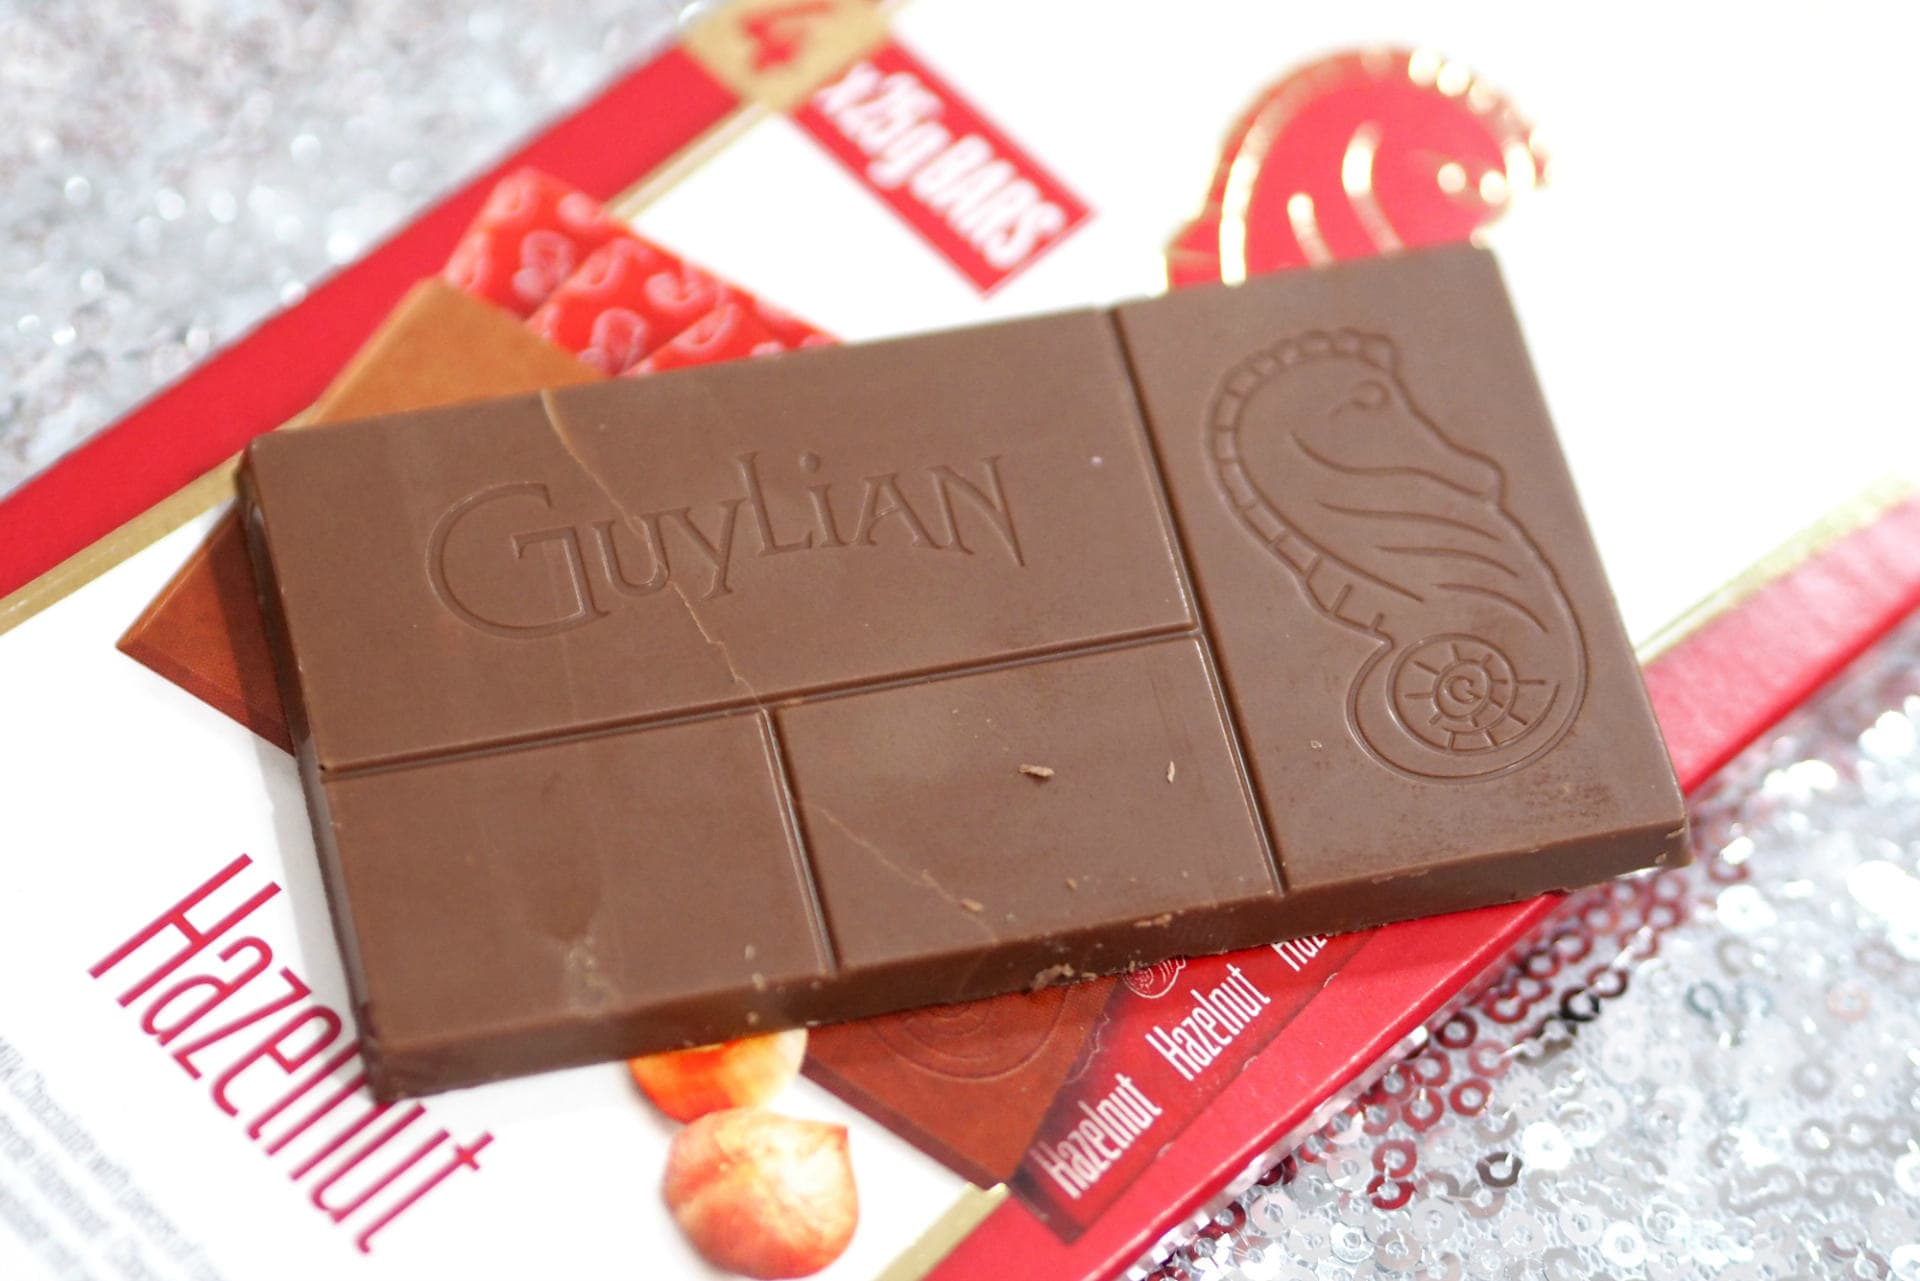 Festive Food, Treats and Drinks Guide 2019 - Guylian 100g Bars